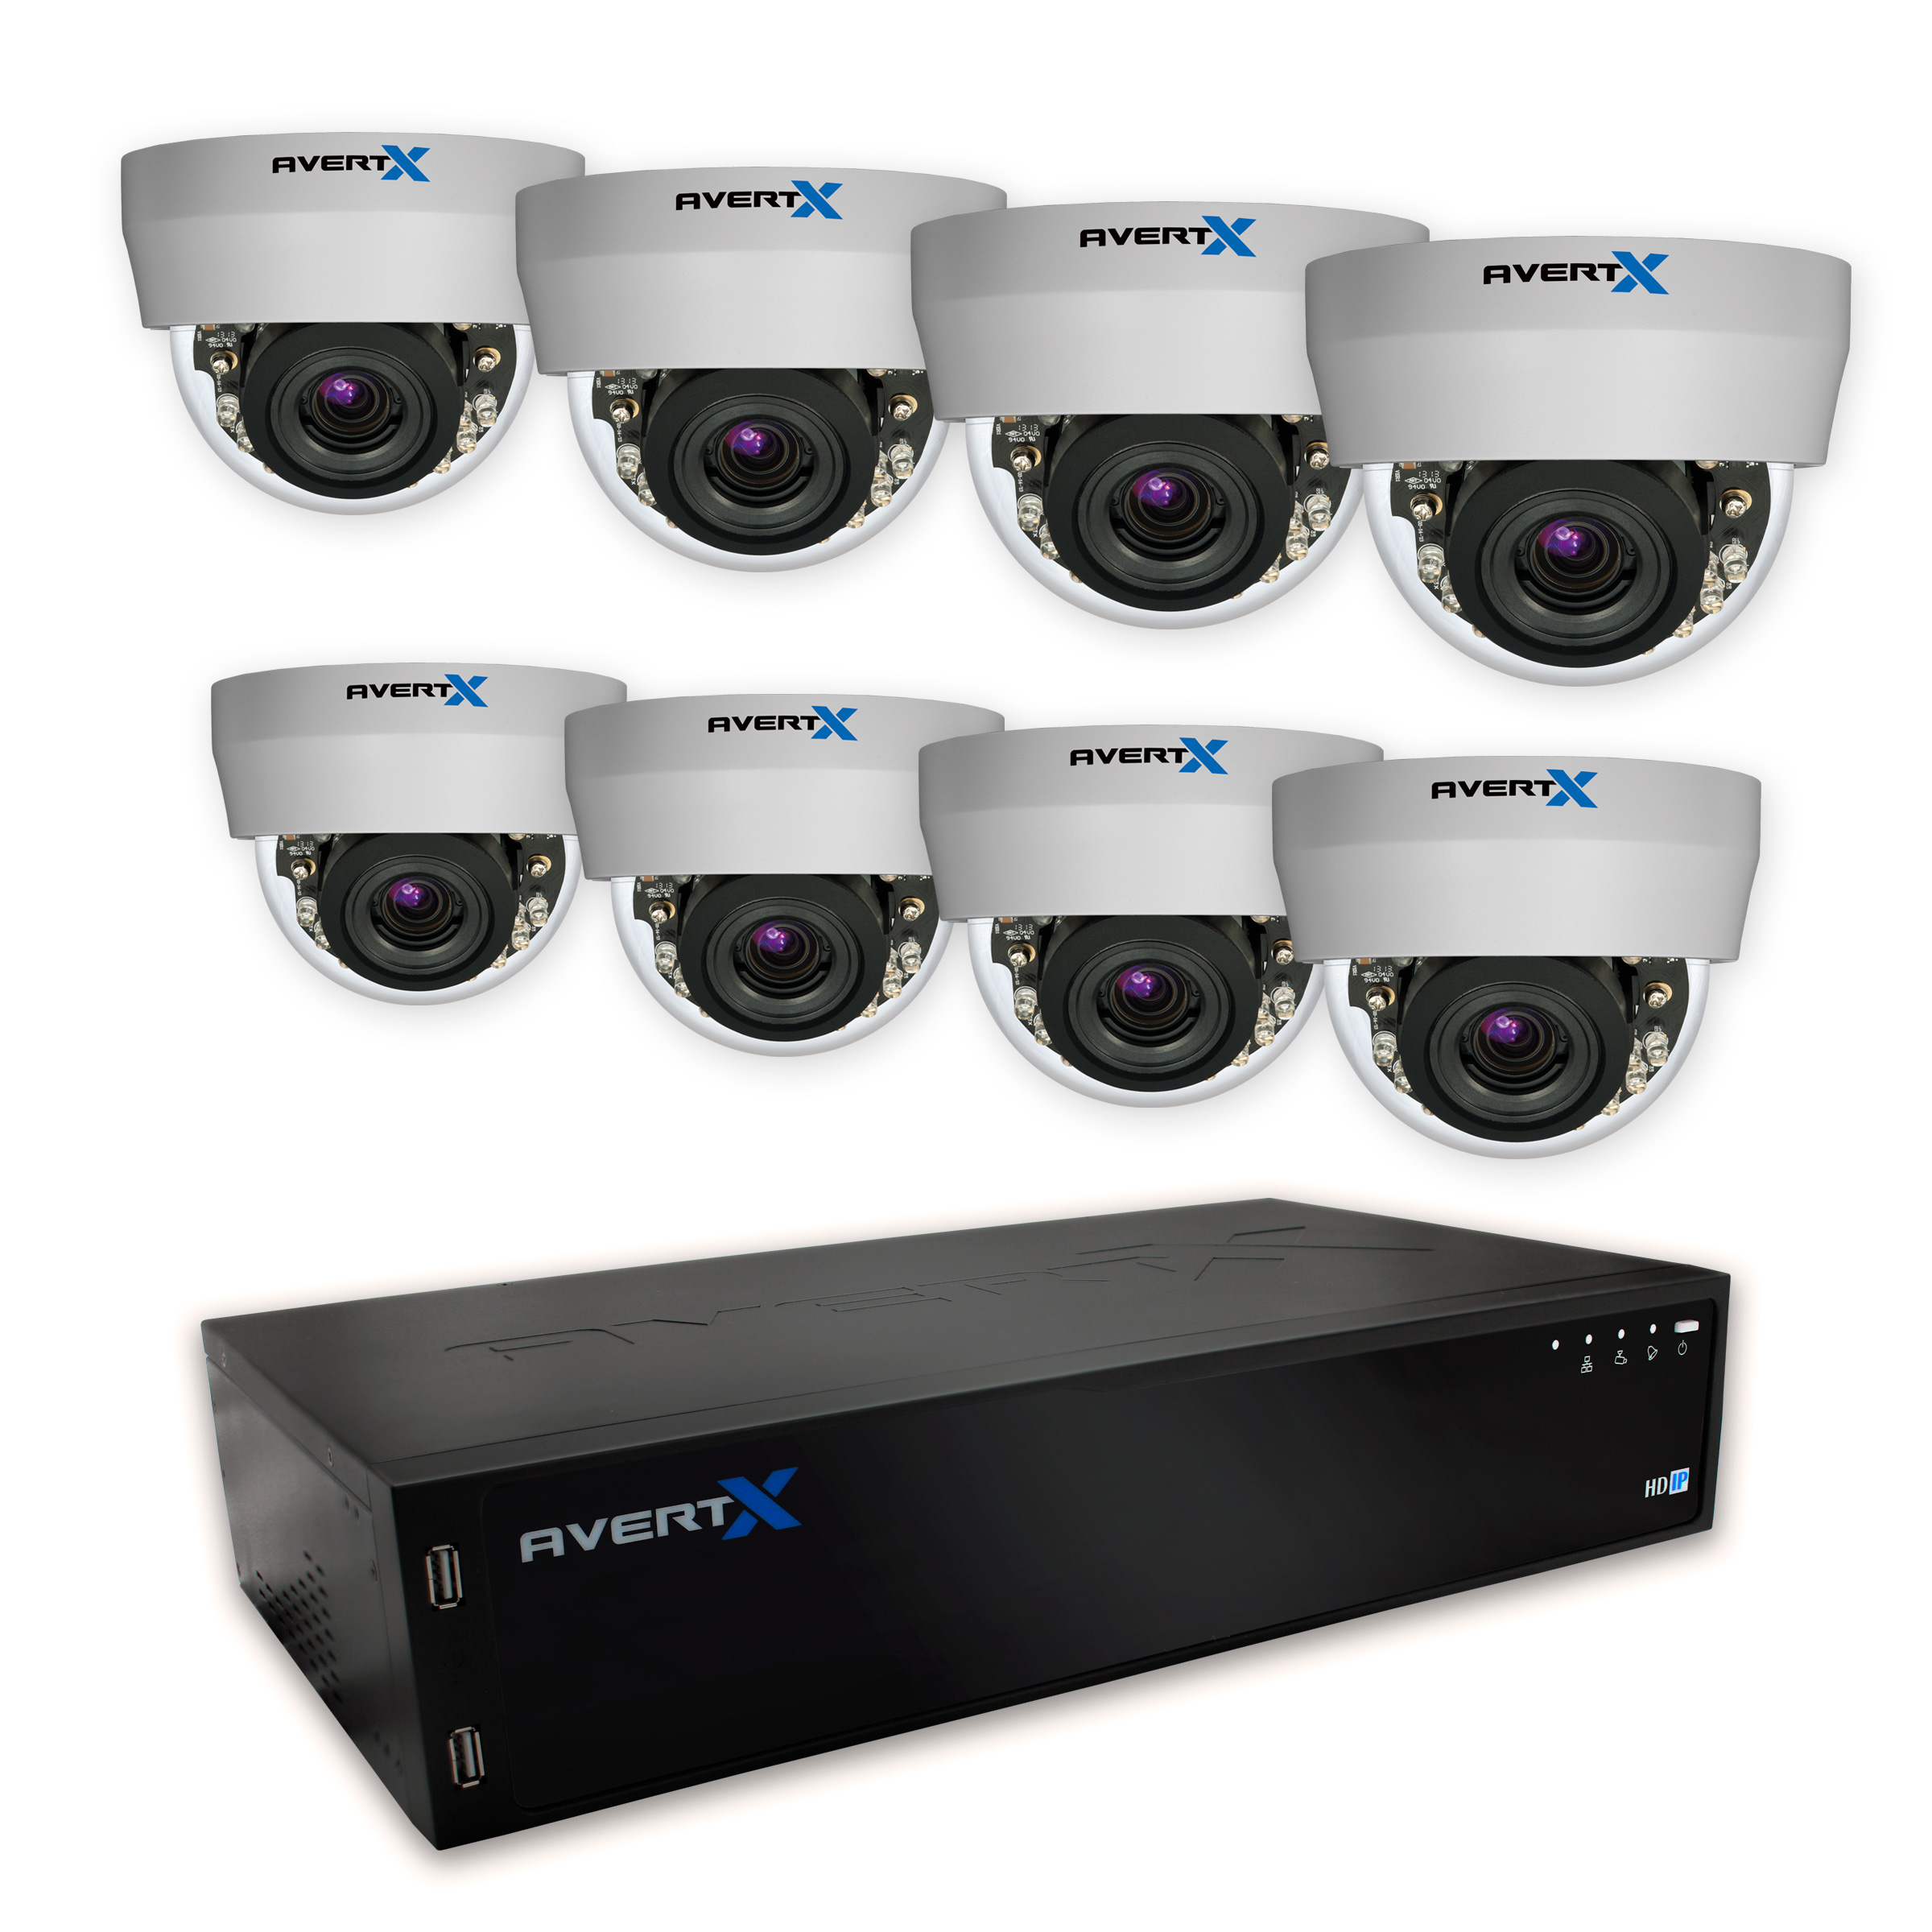 AvertX 16 Channel NVR with 8 HD810 Dome Cameras (Refurbished)